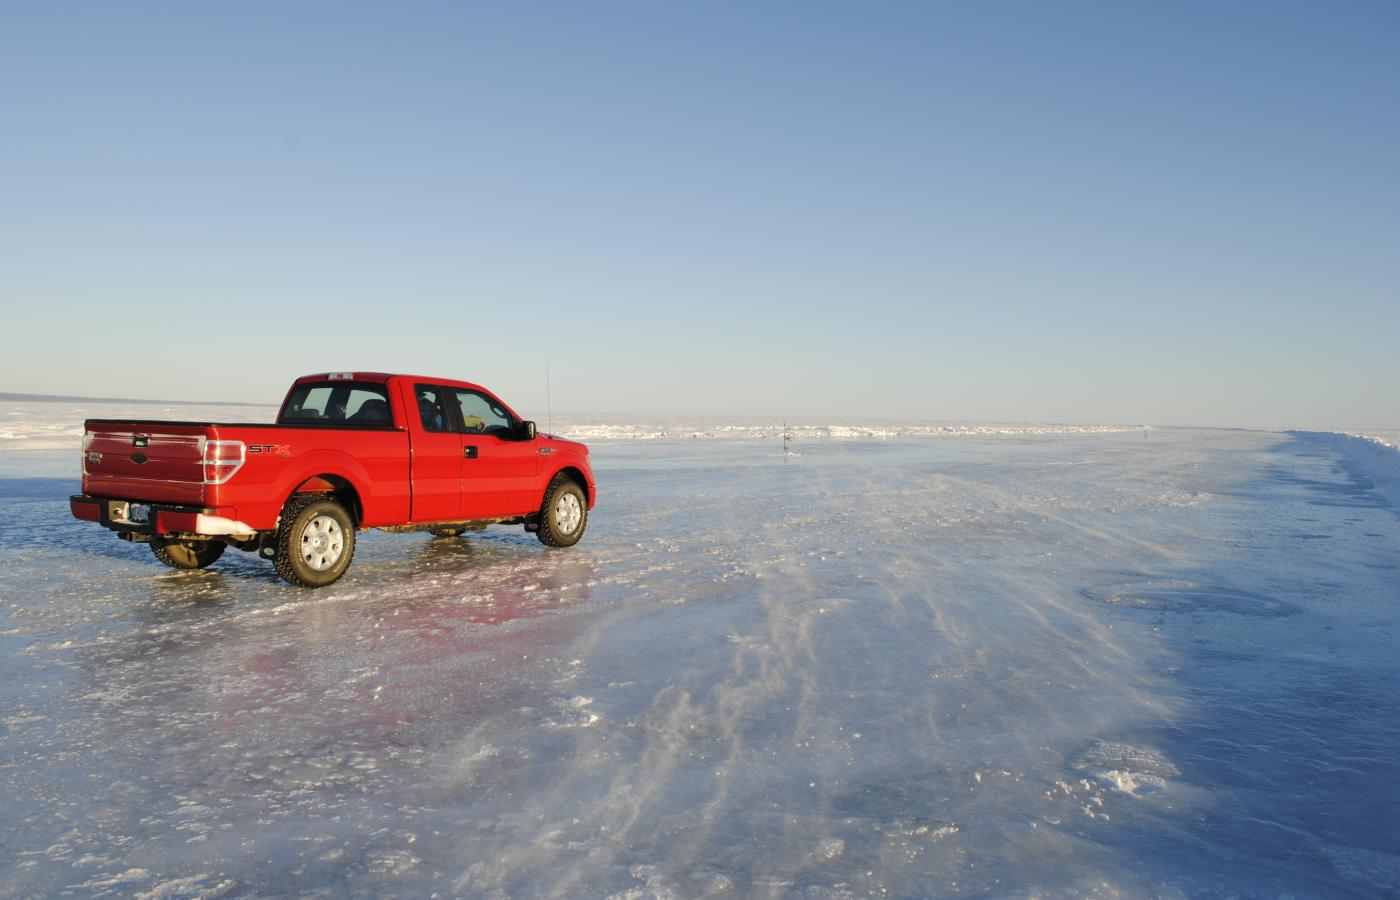 Driving the Sahtu winter road, from Wrigley to Tulita to Norman Wells to Fort Good Hope, NWT.